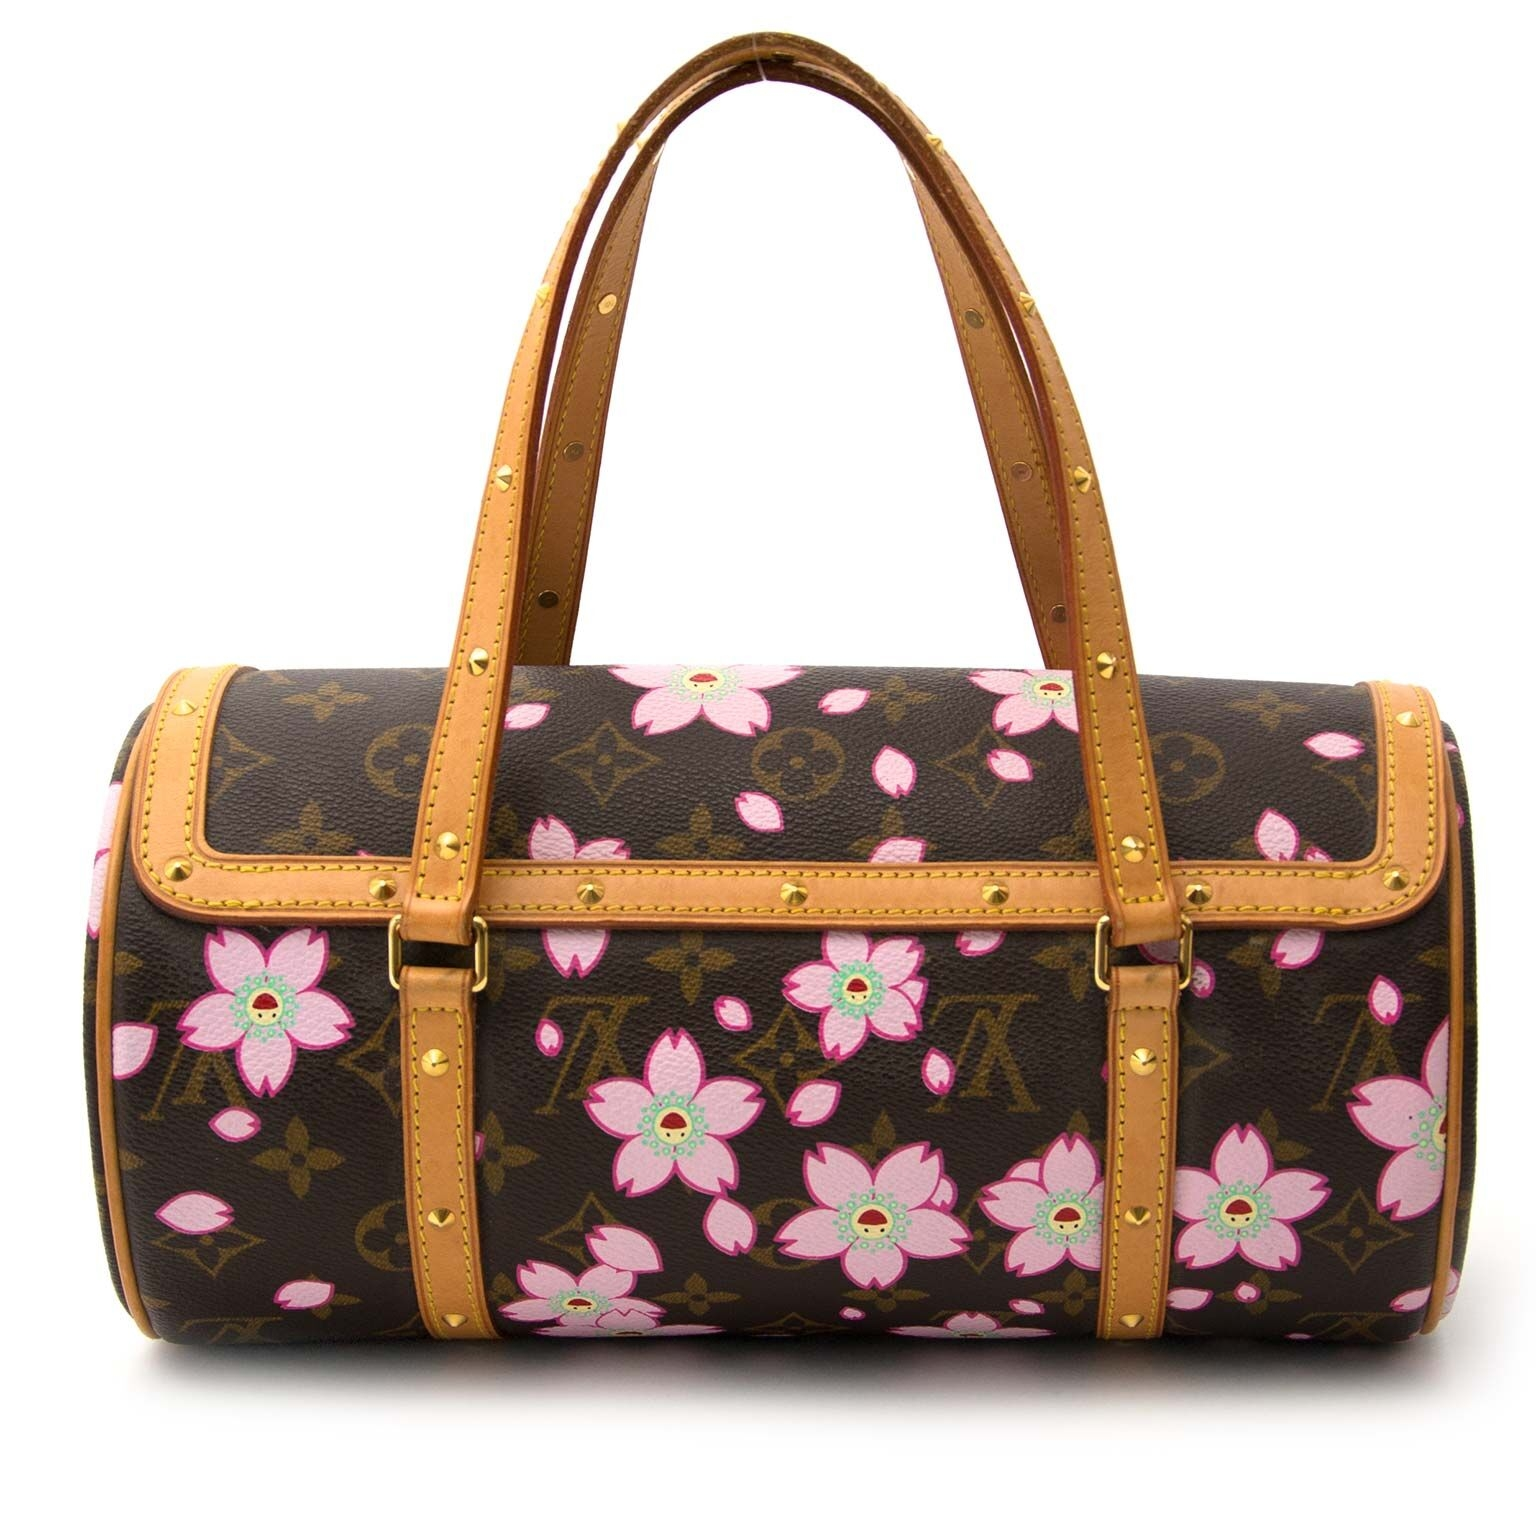 buy Louis Vuitton x Takashi Murakami Papillon Cherry Blossom at labellov